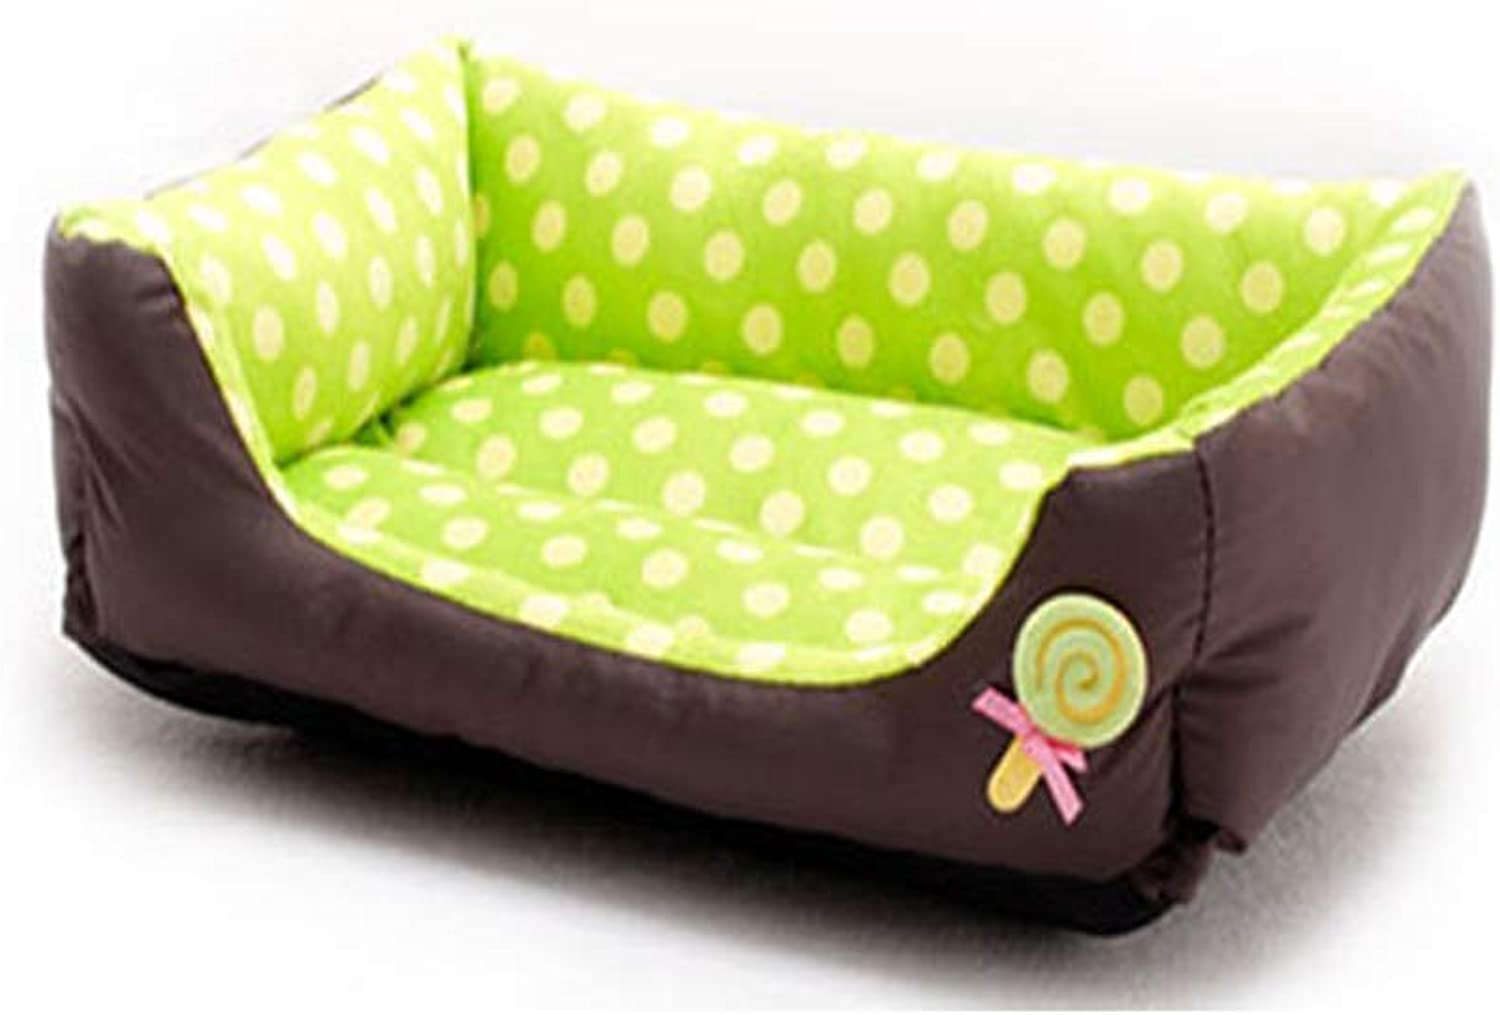 ATR Doghouse Autumn Winter Warm Sofa Pet Bed Comfortable Pet Bed Little Teddy Soft Sofa Winter Warm Dog Bed Suede Kitty Pet Waterloo (color  Green, Size  L)